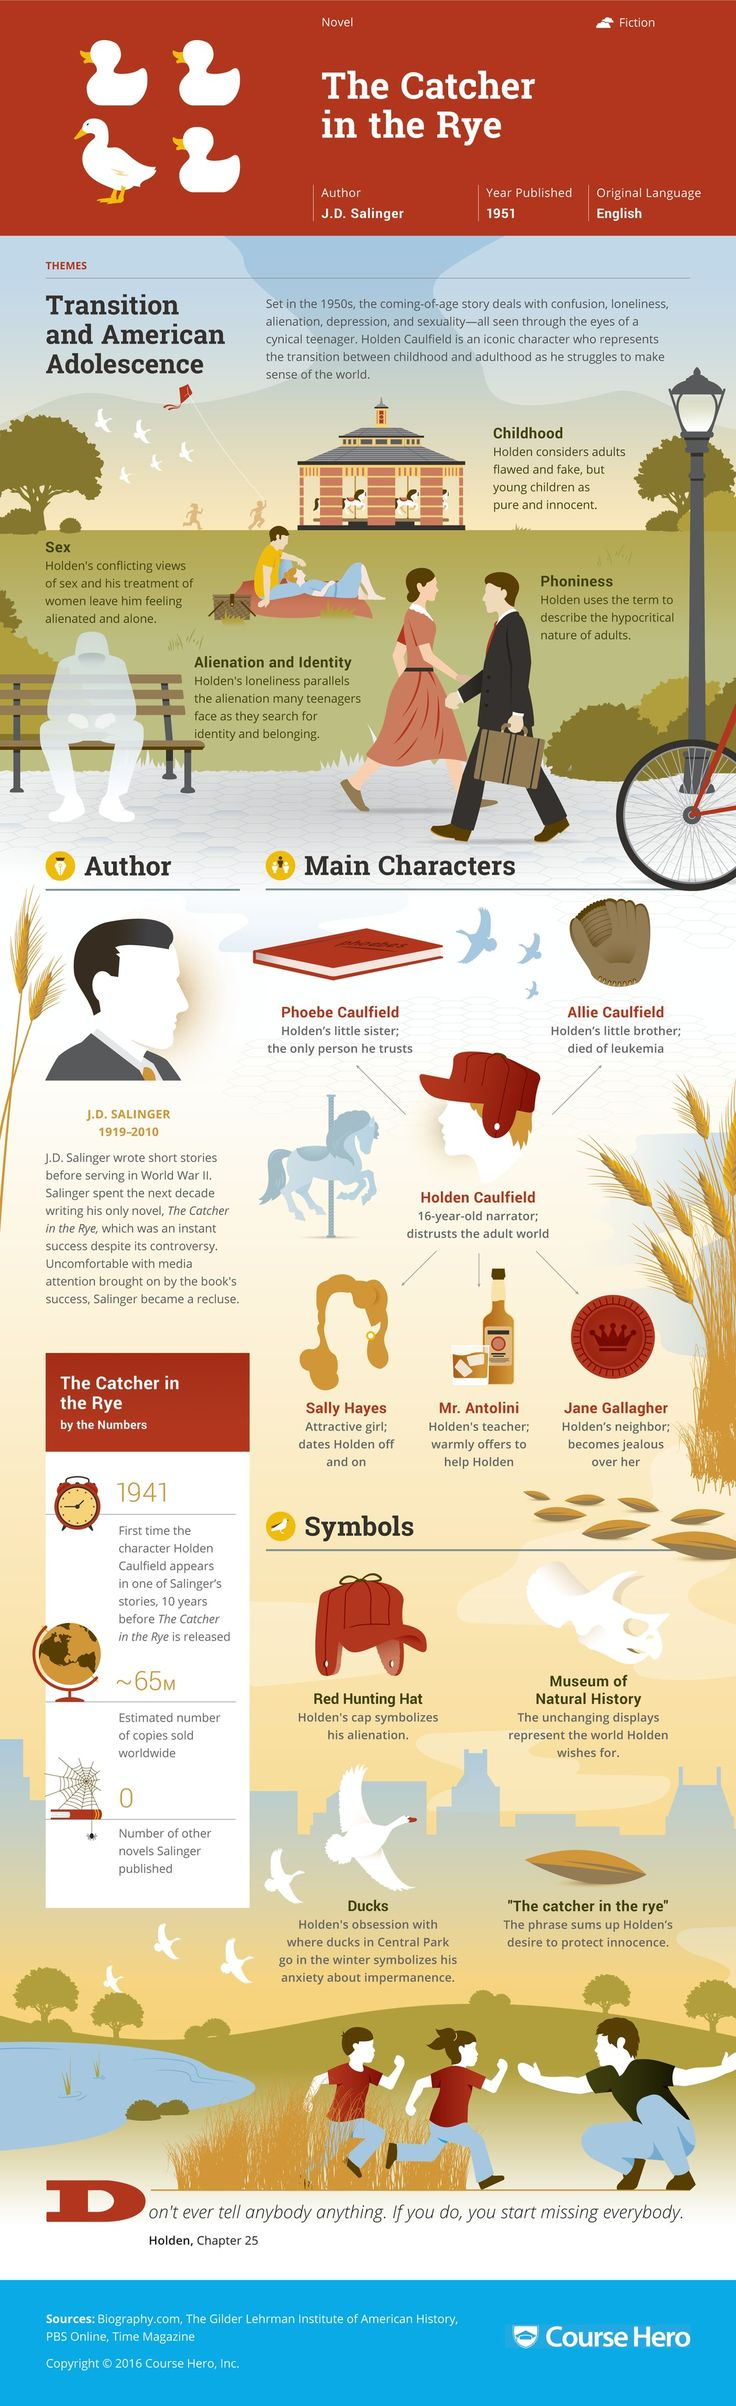 best ideas about literature english literature study guide for j d salinger s the catcher in the rye including chapter summary character analysis and more learn all about the catcher in the rye